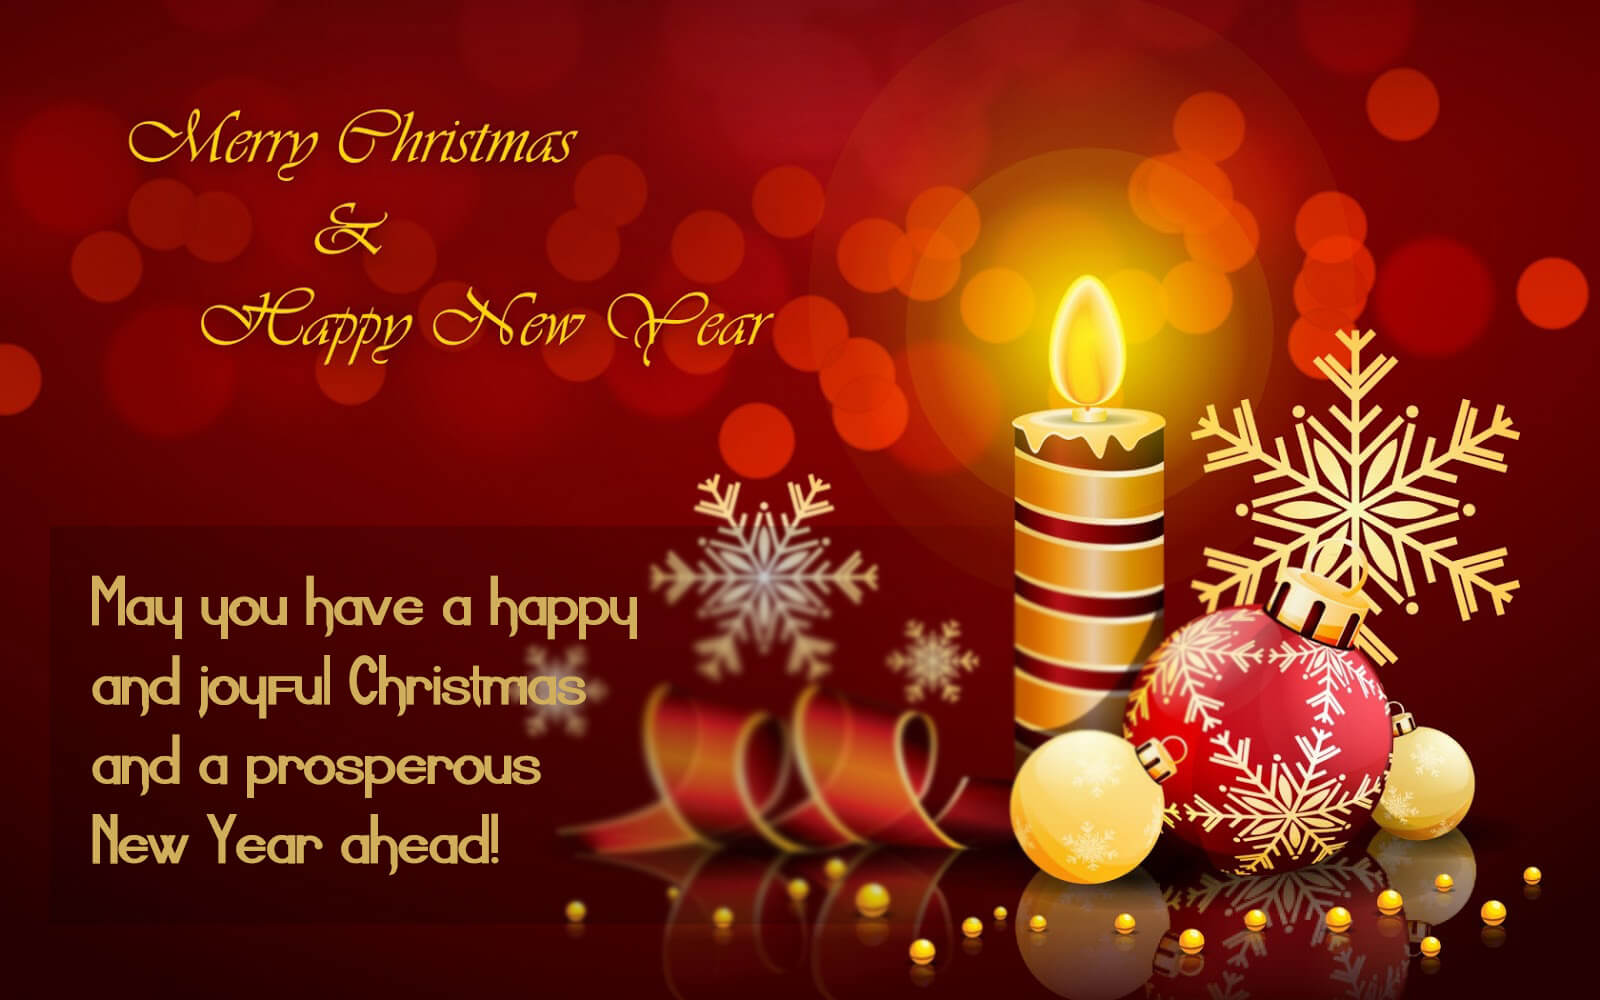 Merry Christmas 2019 and Happy New Year 2020 Wishes Quotes 1600x1000